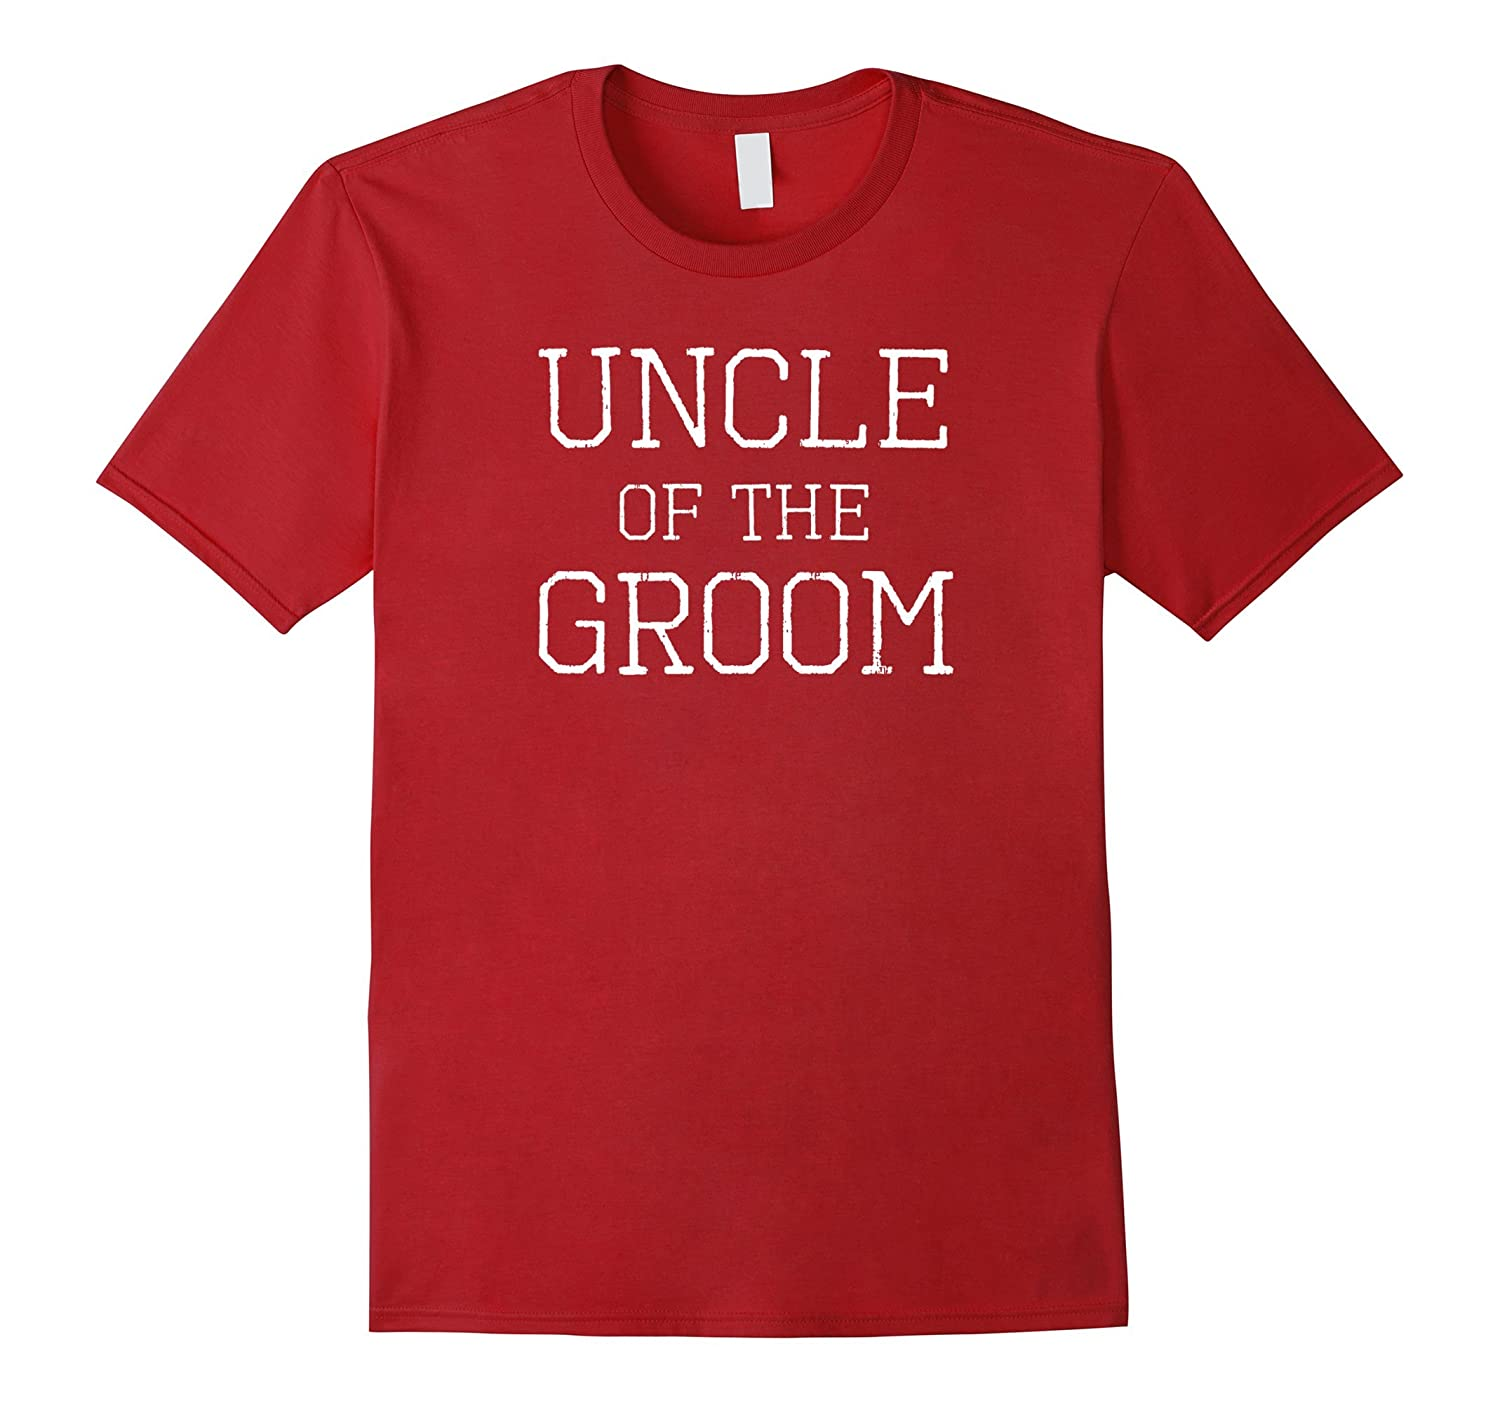 Uncle of the Groom - Coordinating Wedding Party Tee Shirts-Vaci